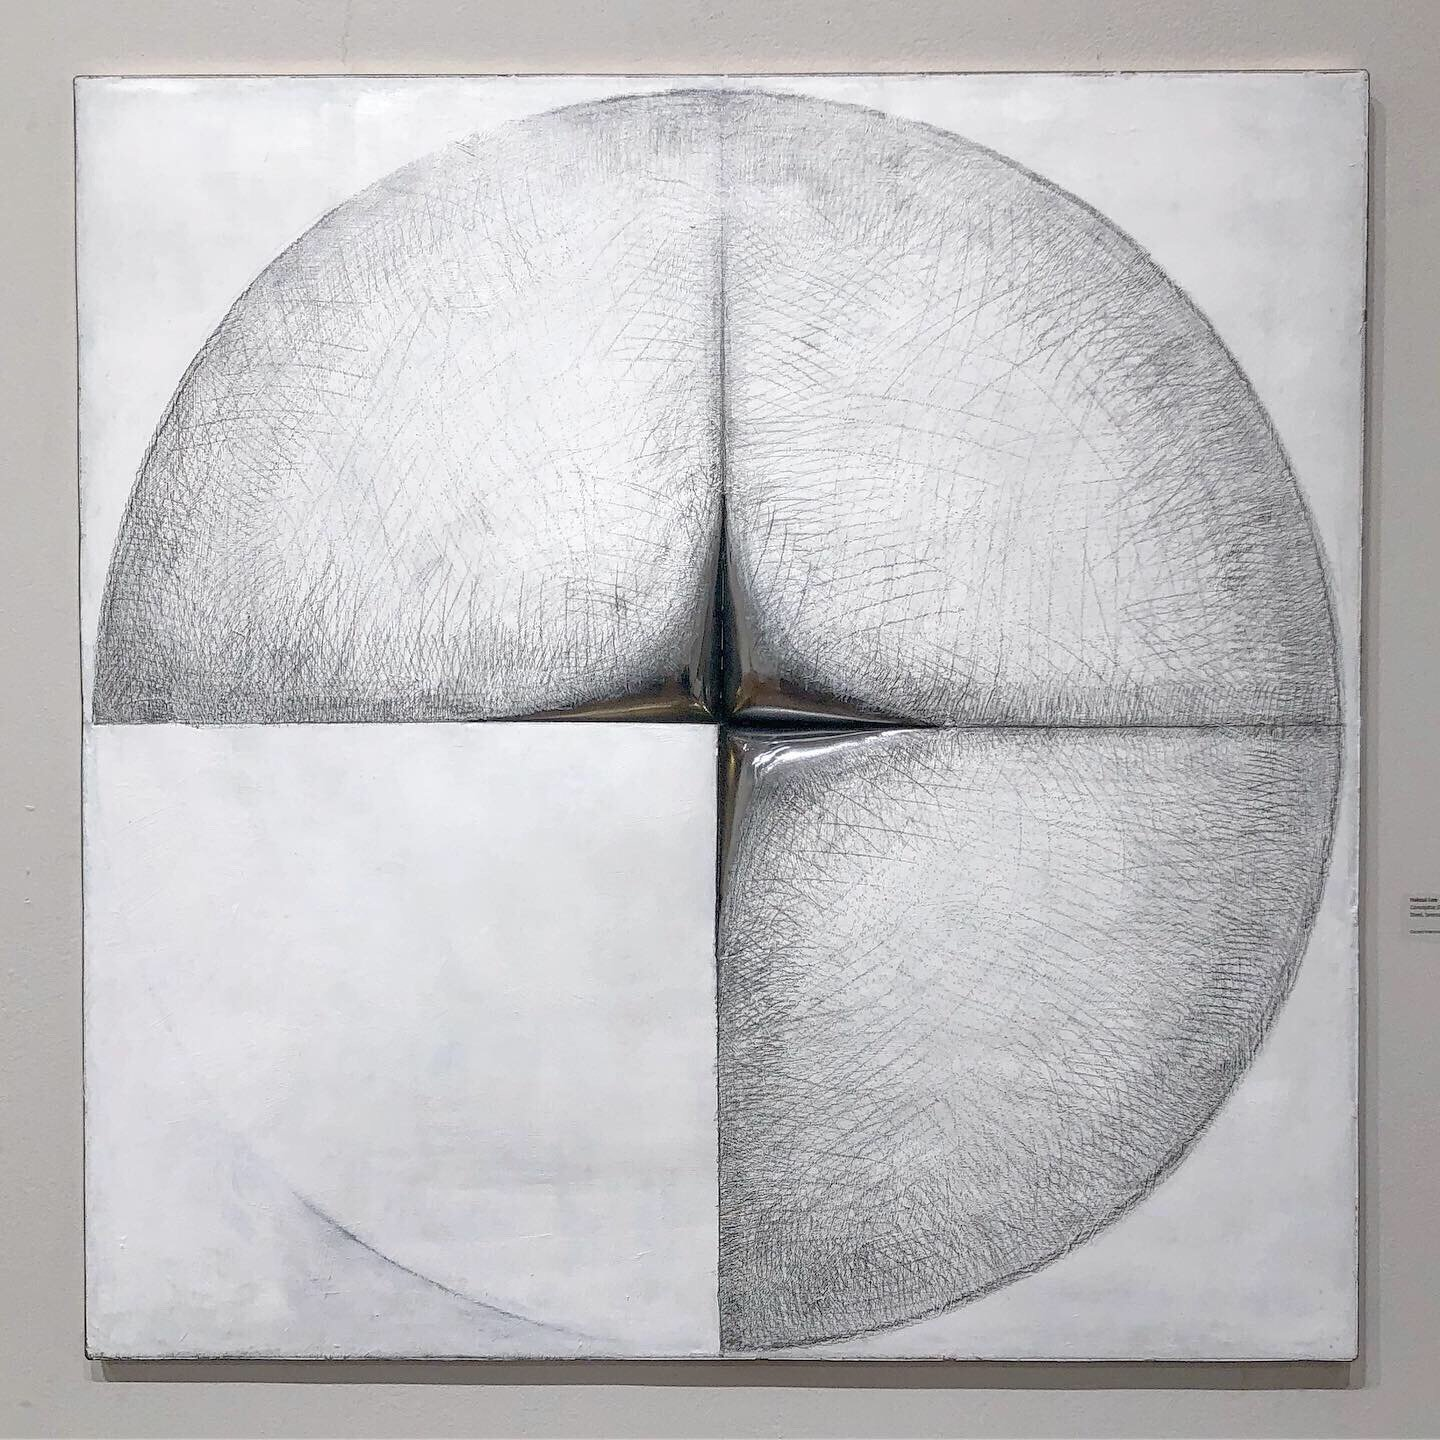 """Conceptus Et , 2019. Pencil drawing and acrylic painting on formed steel and bronze. H 36"""" x W 36"""" x D 5"""""""